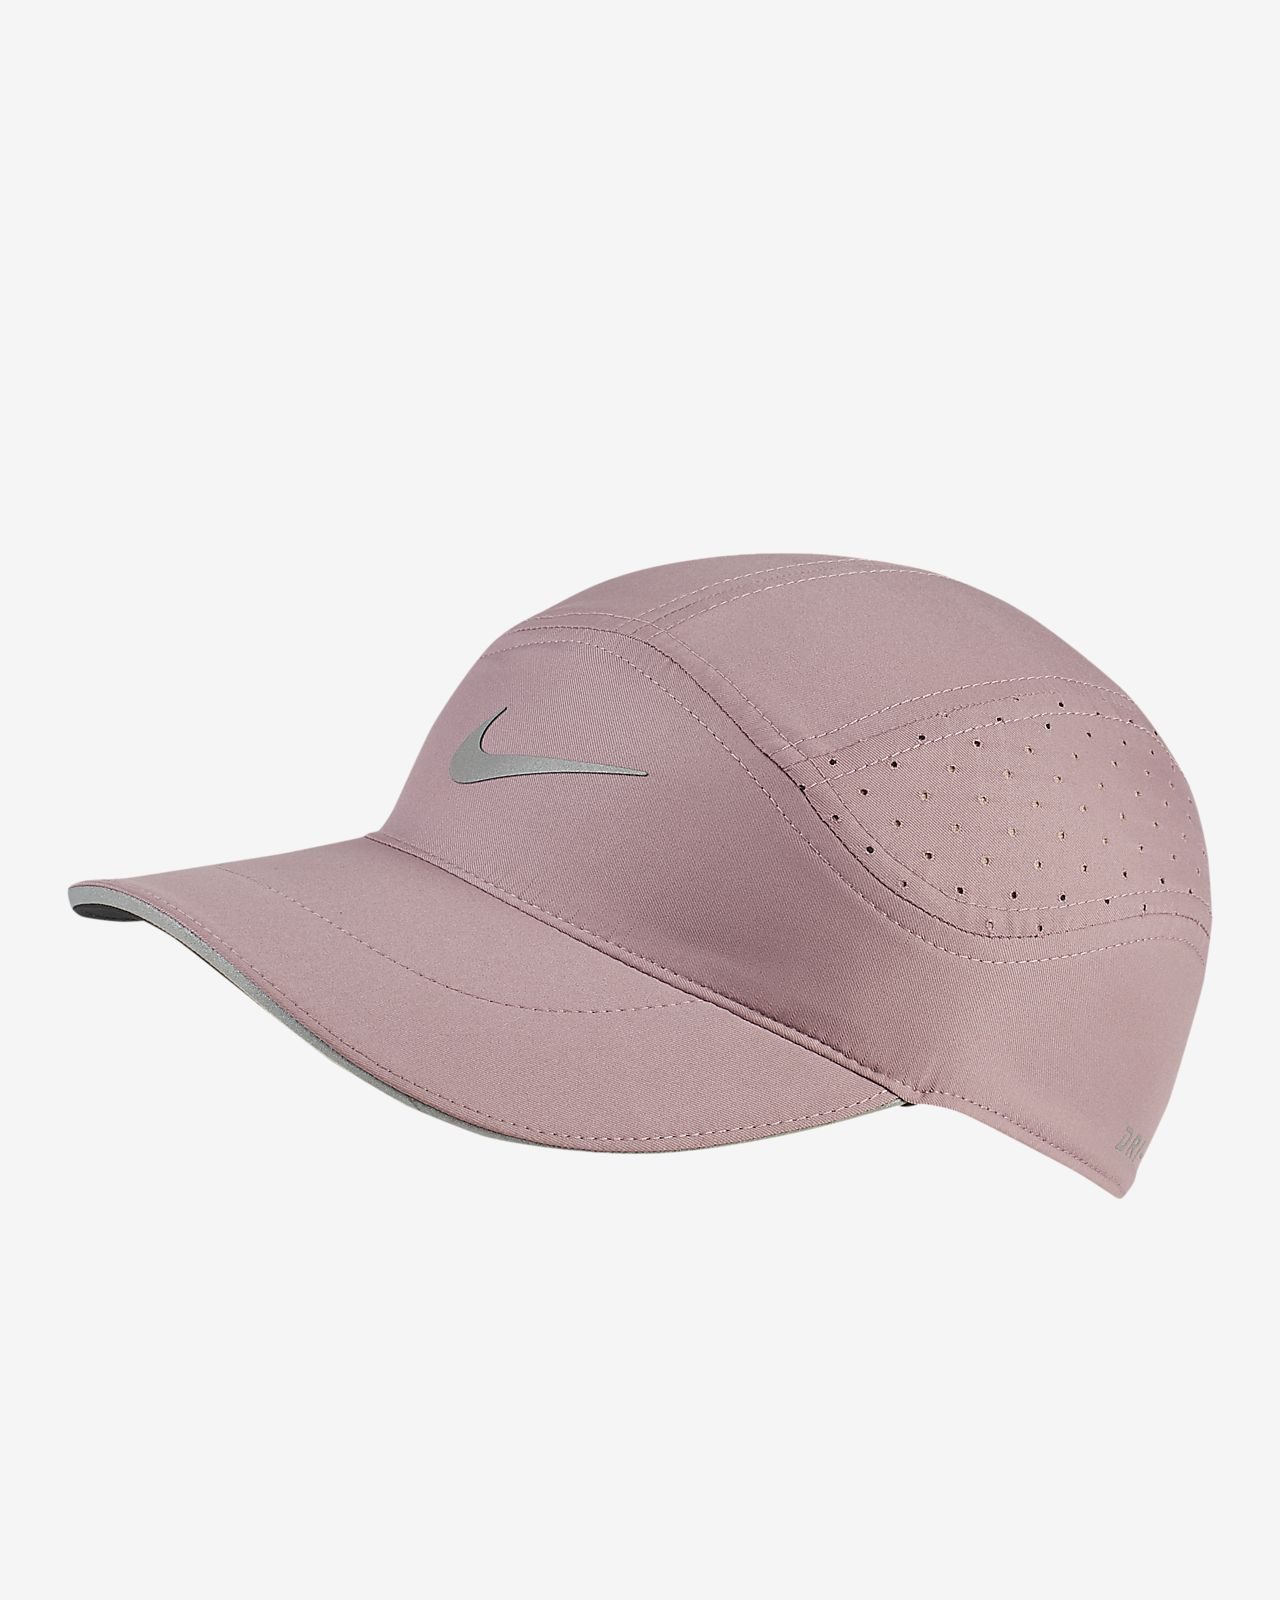 Nike AeroBill Women's Adjustable Running Hat